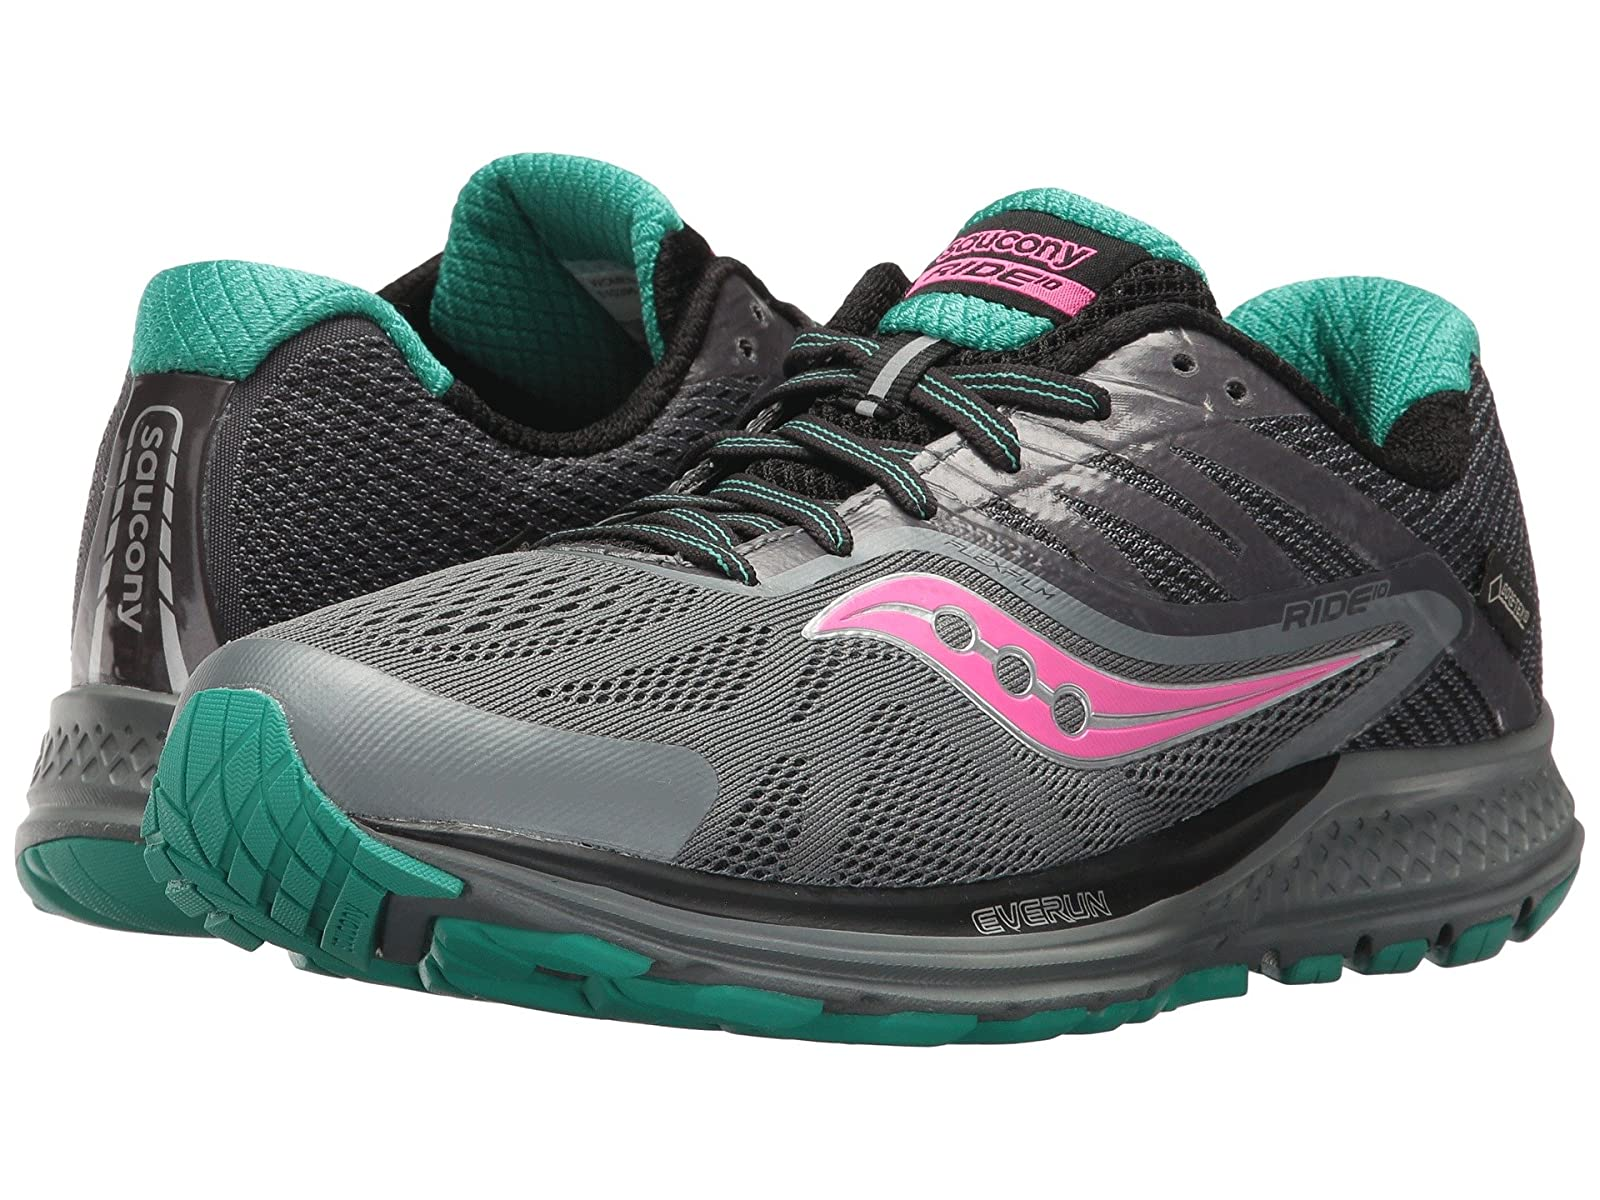 Saucony Ride 10 GTX®Atmospheric grades have affordable shoes